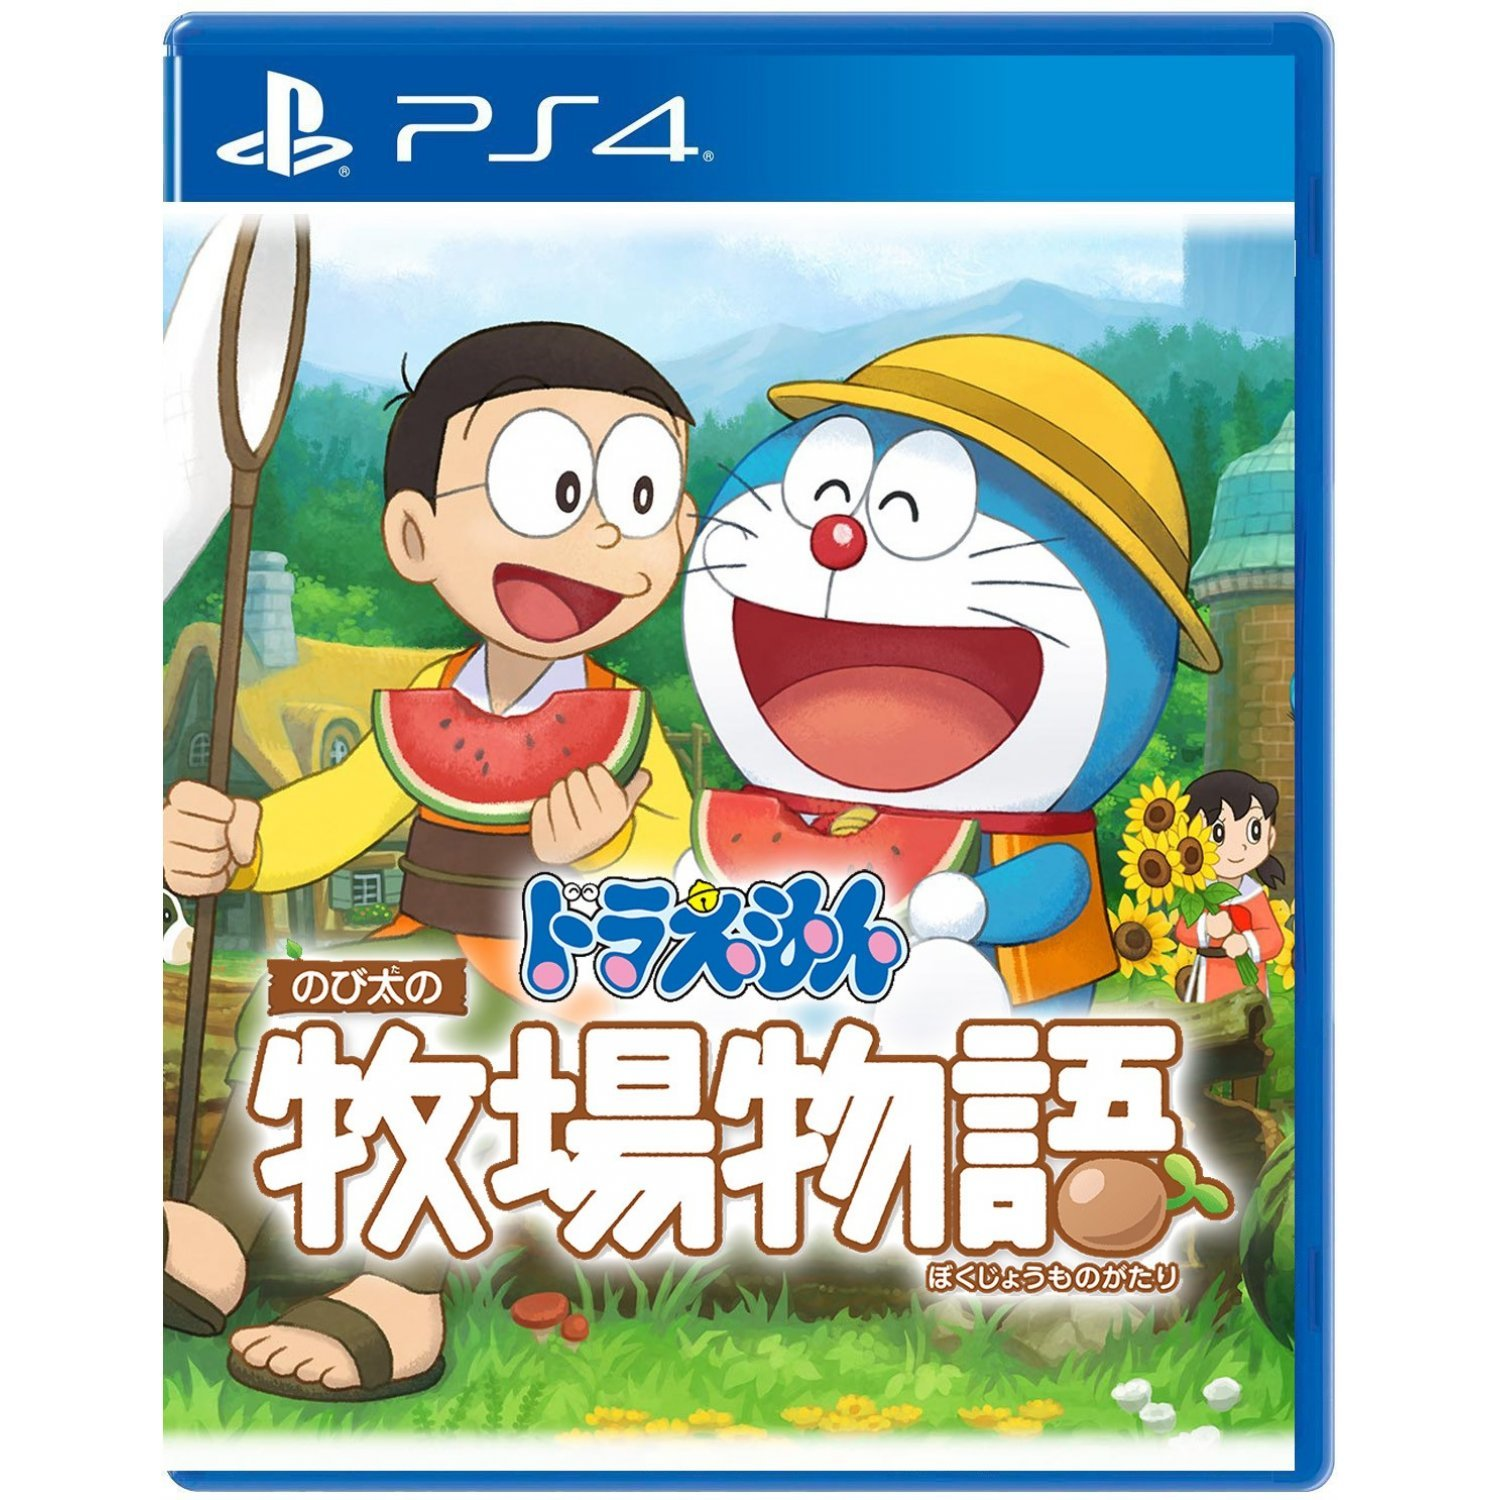 doraemon-story-of-seasons-628059.1.jpg